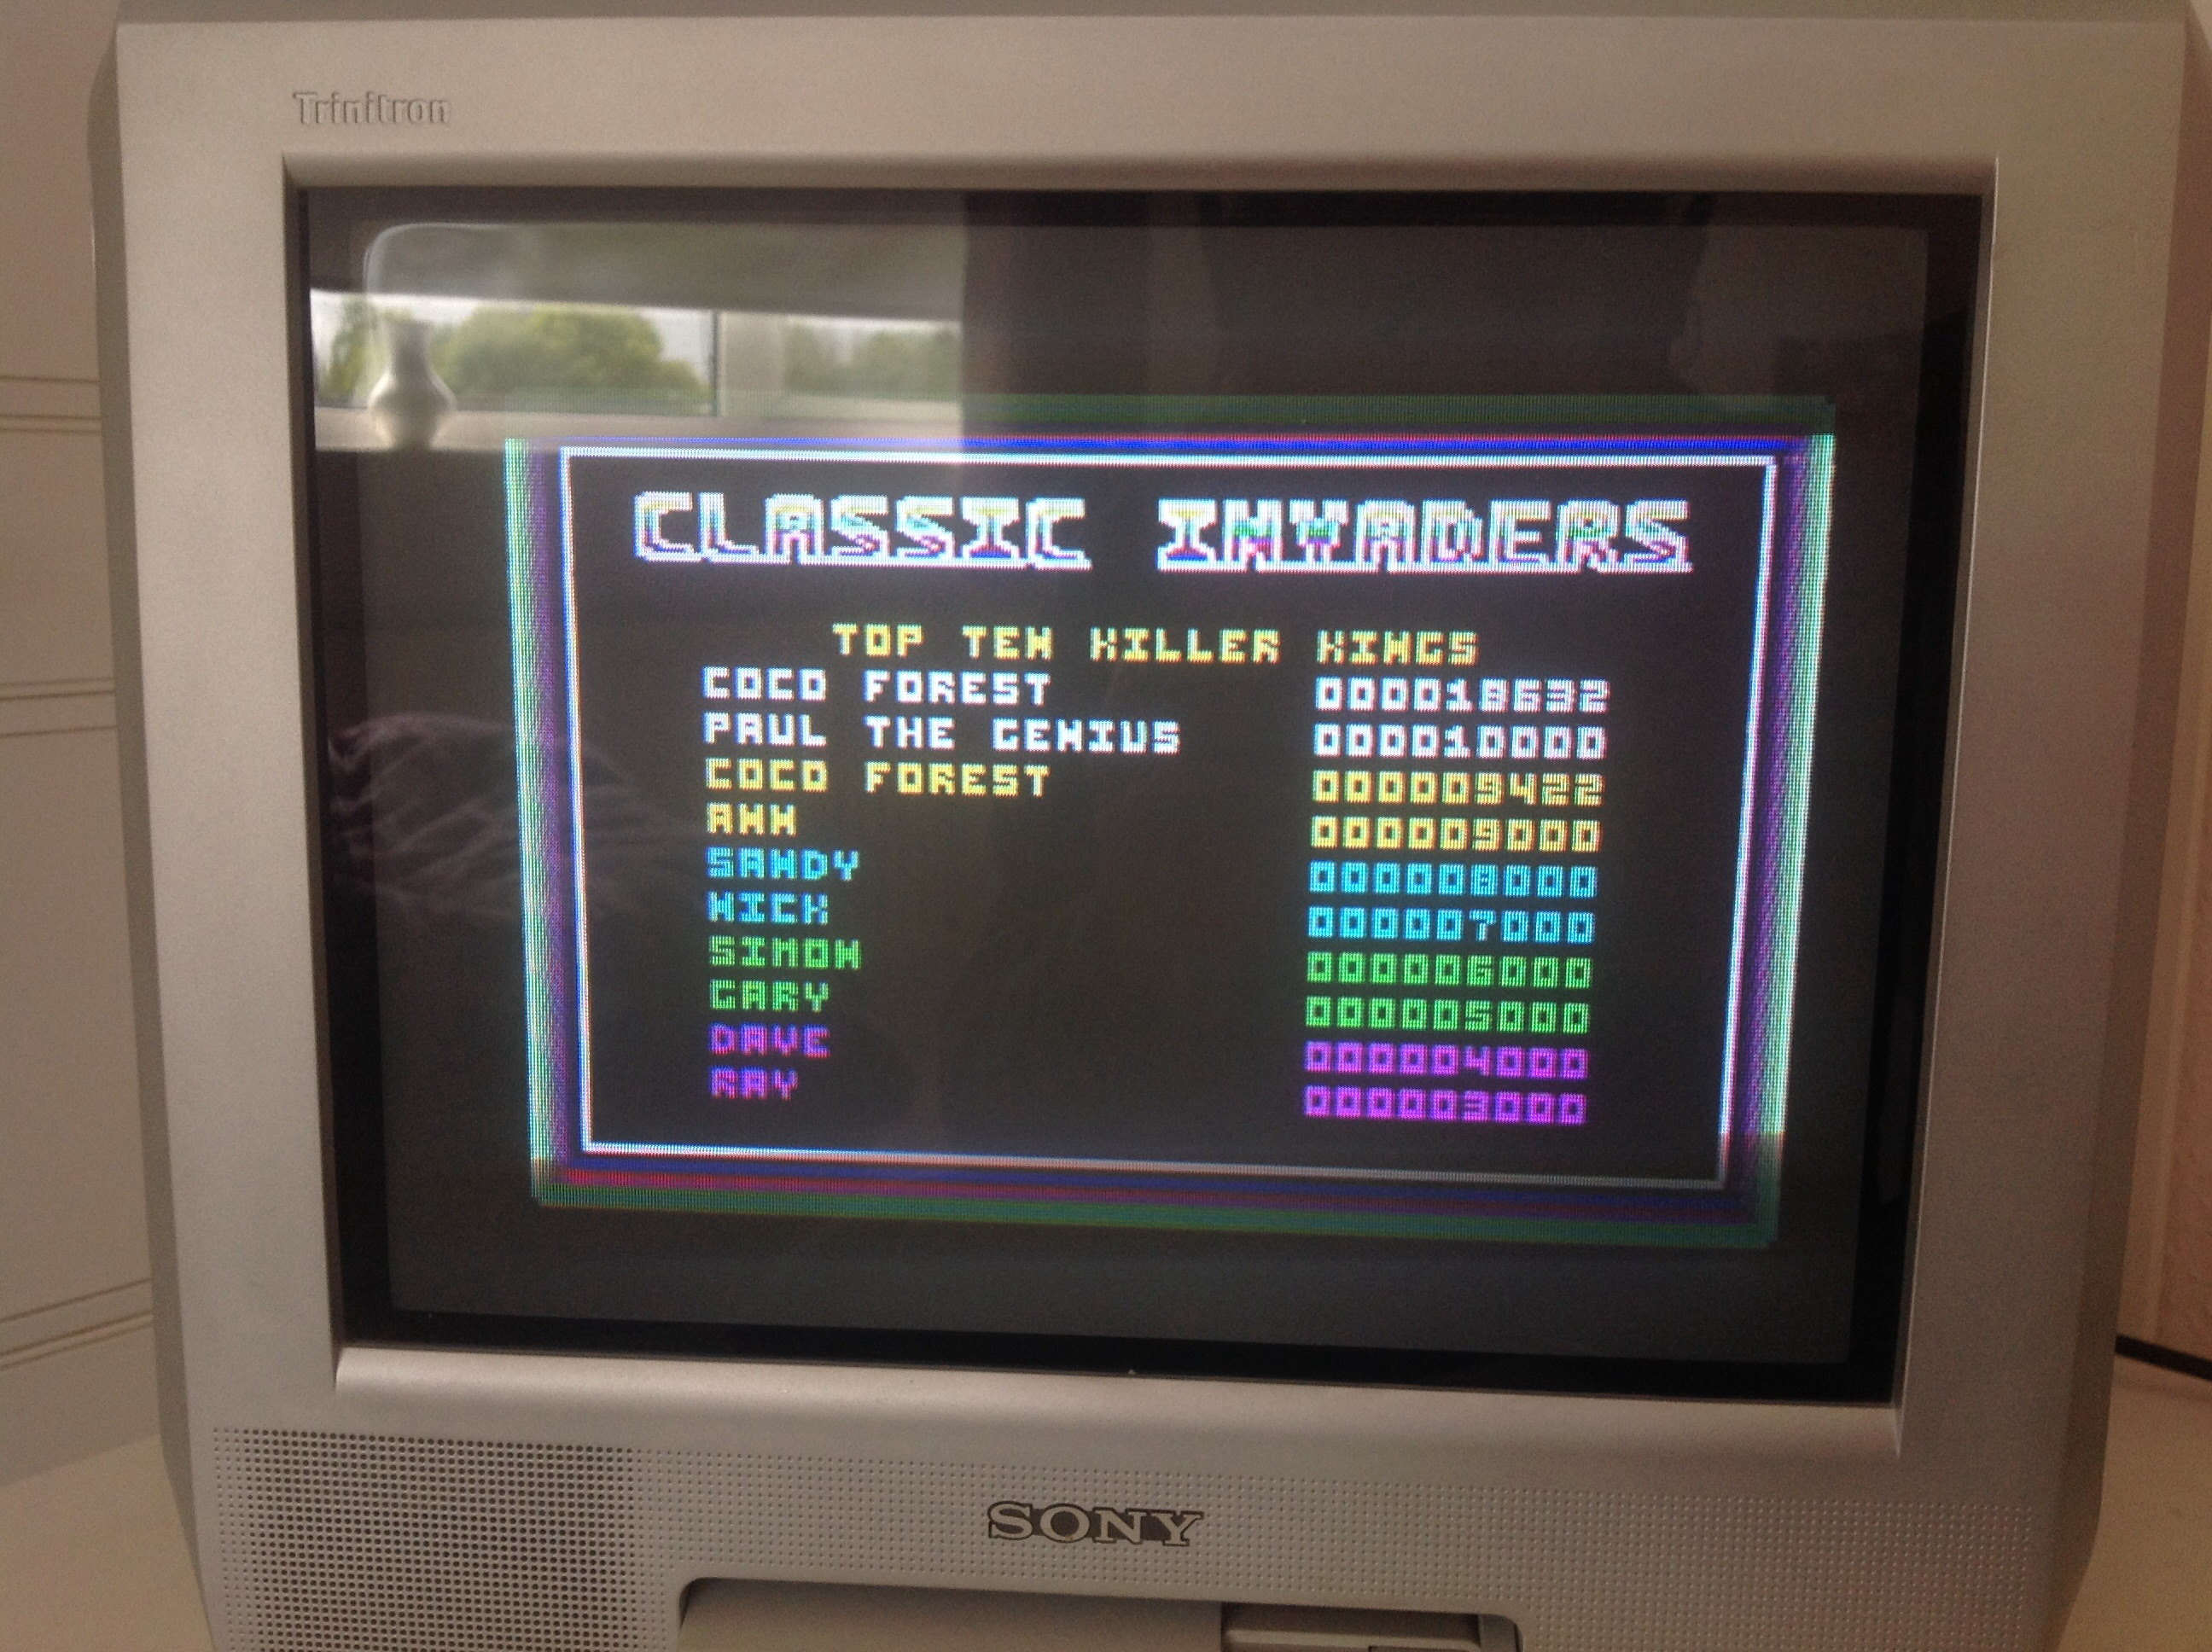 CoCoForest: Classic Invaders (Amstrad CPC) 18,632 points on 2015-05-07 08:48:28